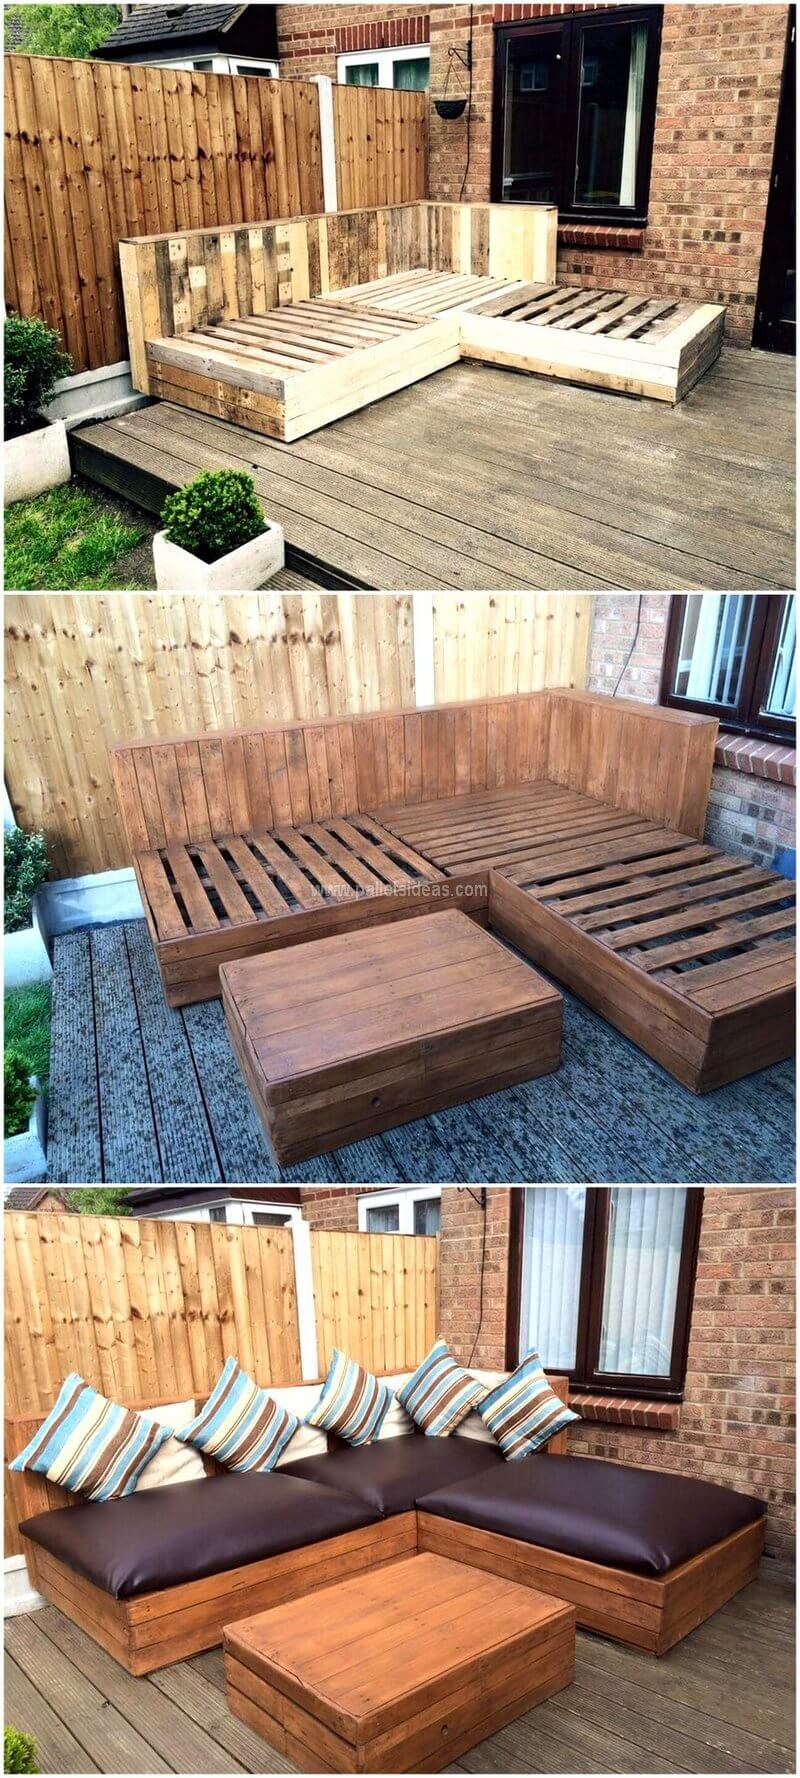 This Is Basically A Visual Tutorial For You To Understand How To Work To Make A Stylish And Attractive Corner Pallet Diy Diy Pallet Projects Corner Sofa Garden